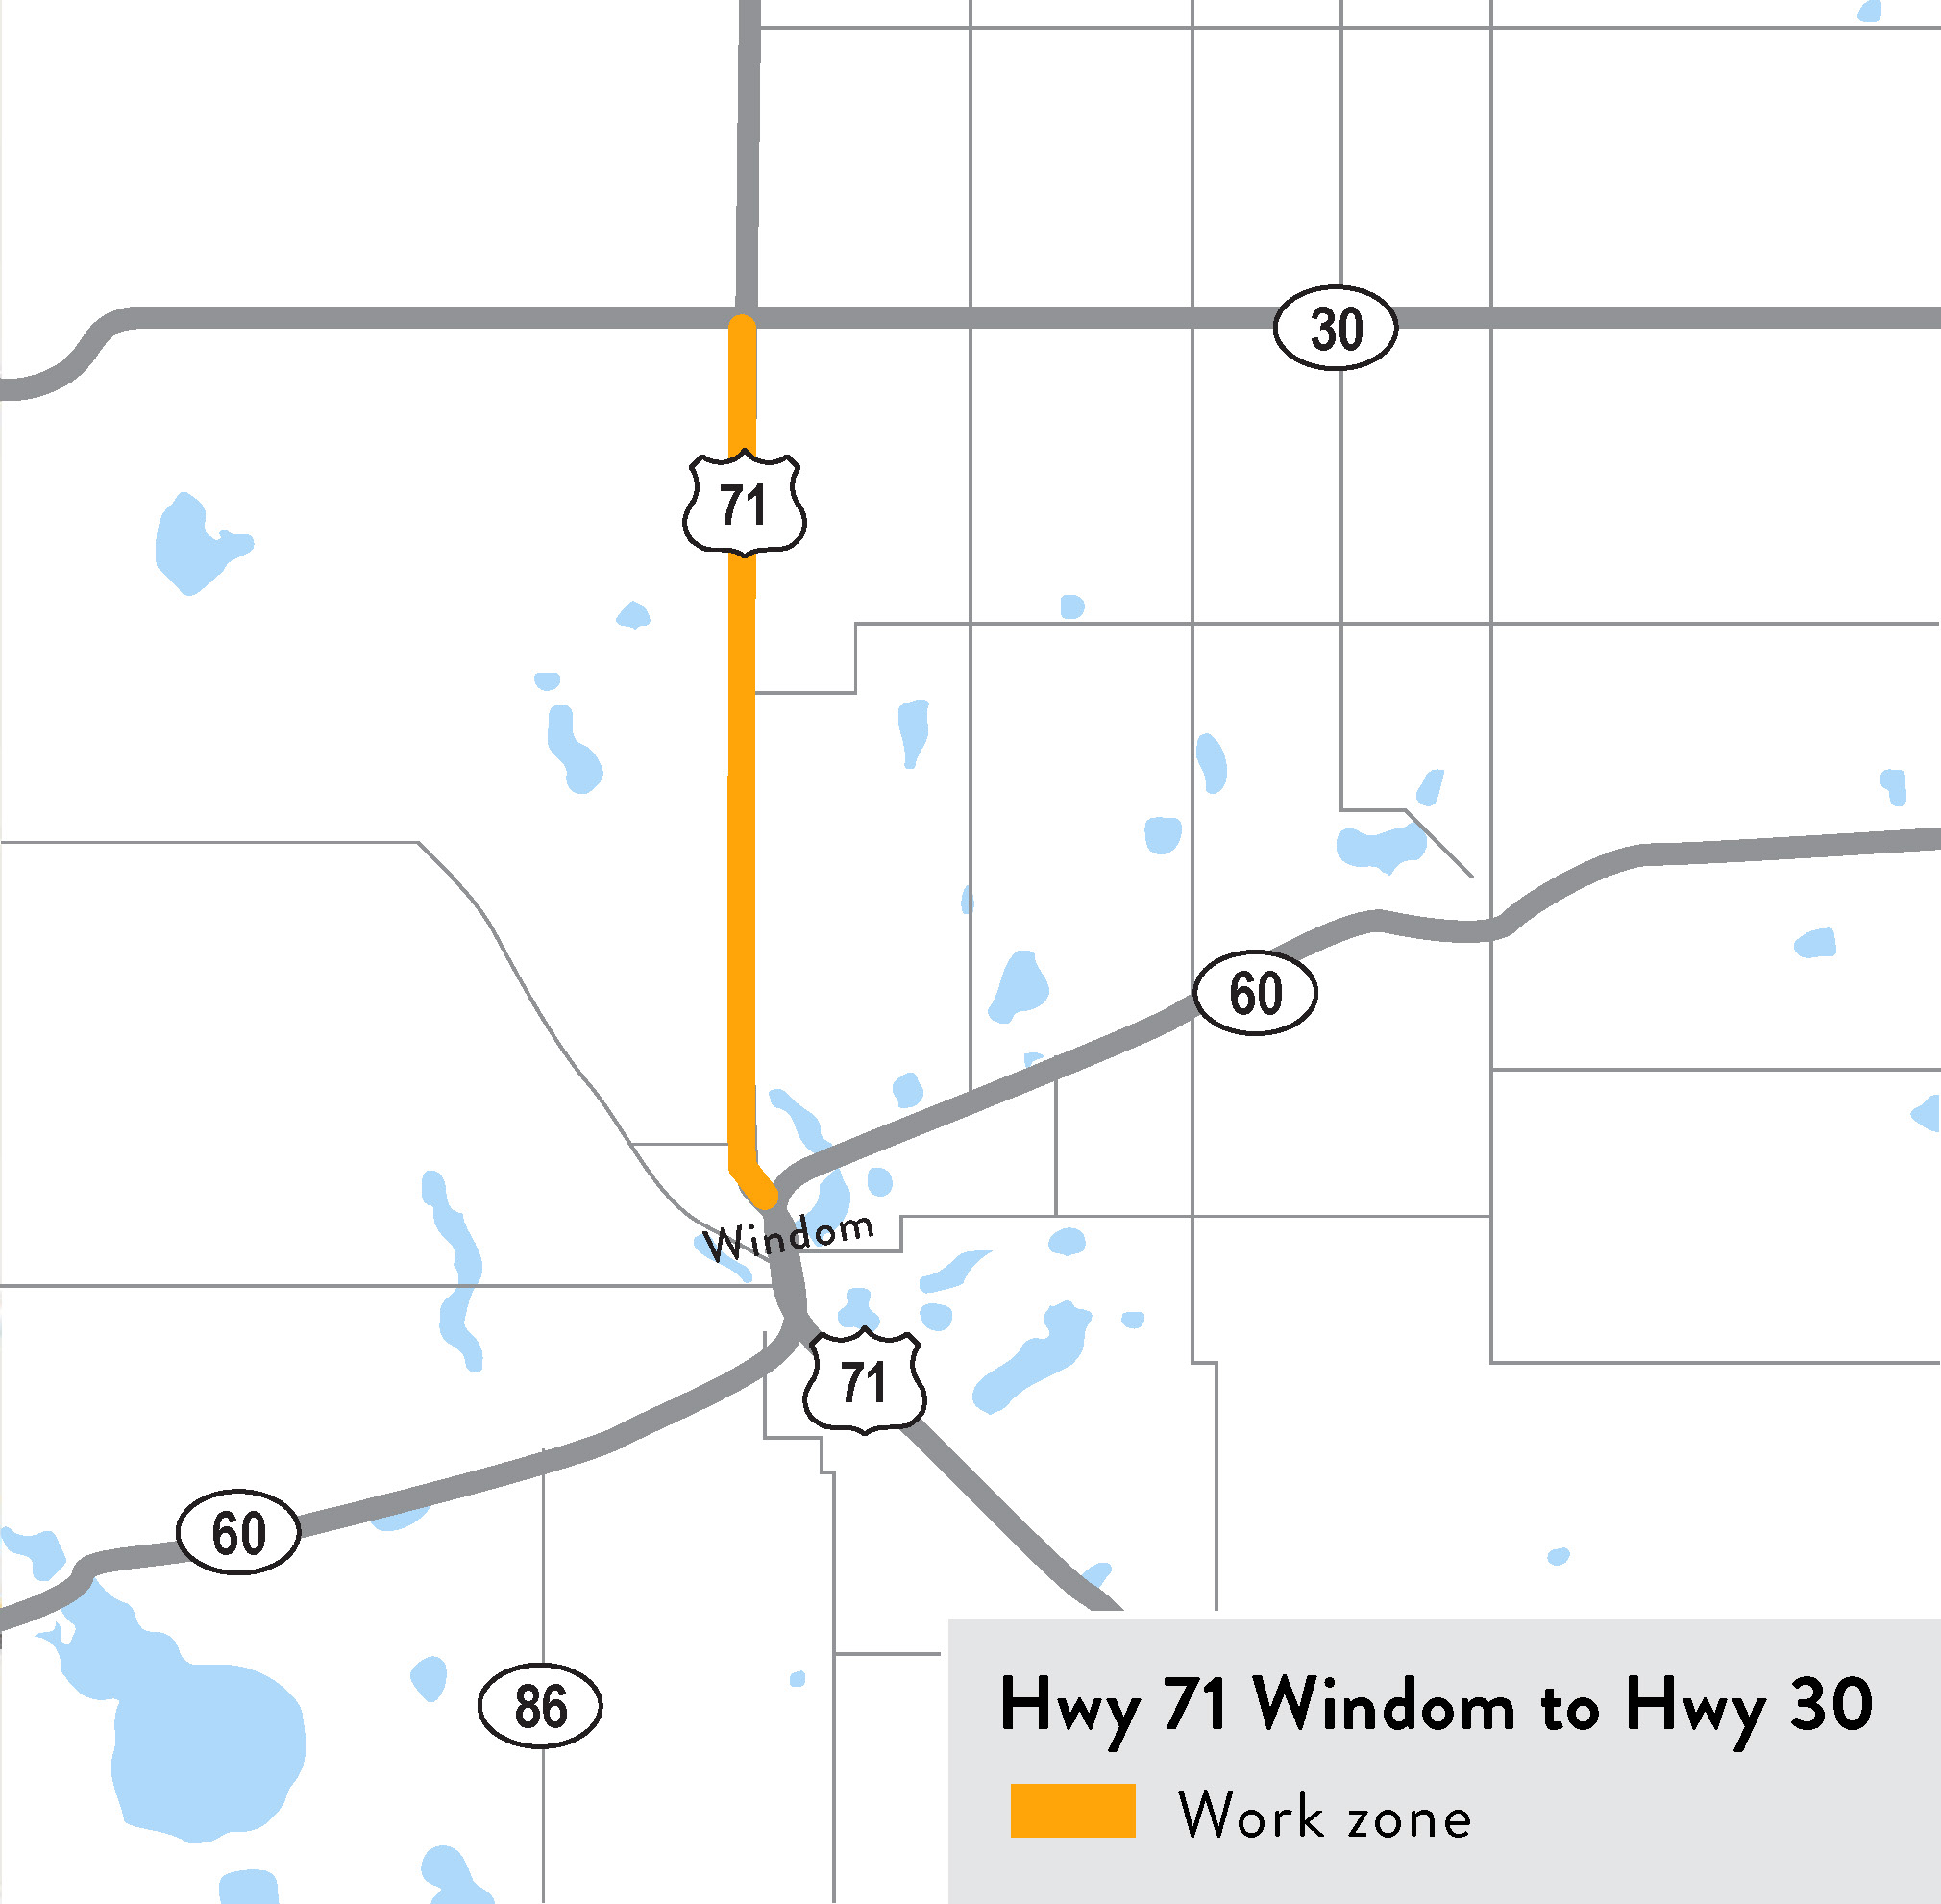 Hwy 71 Windom to Hwy 30 map